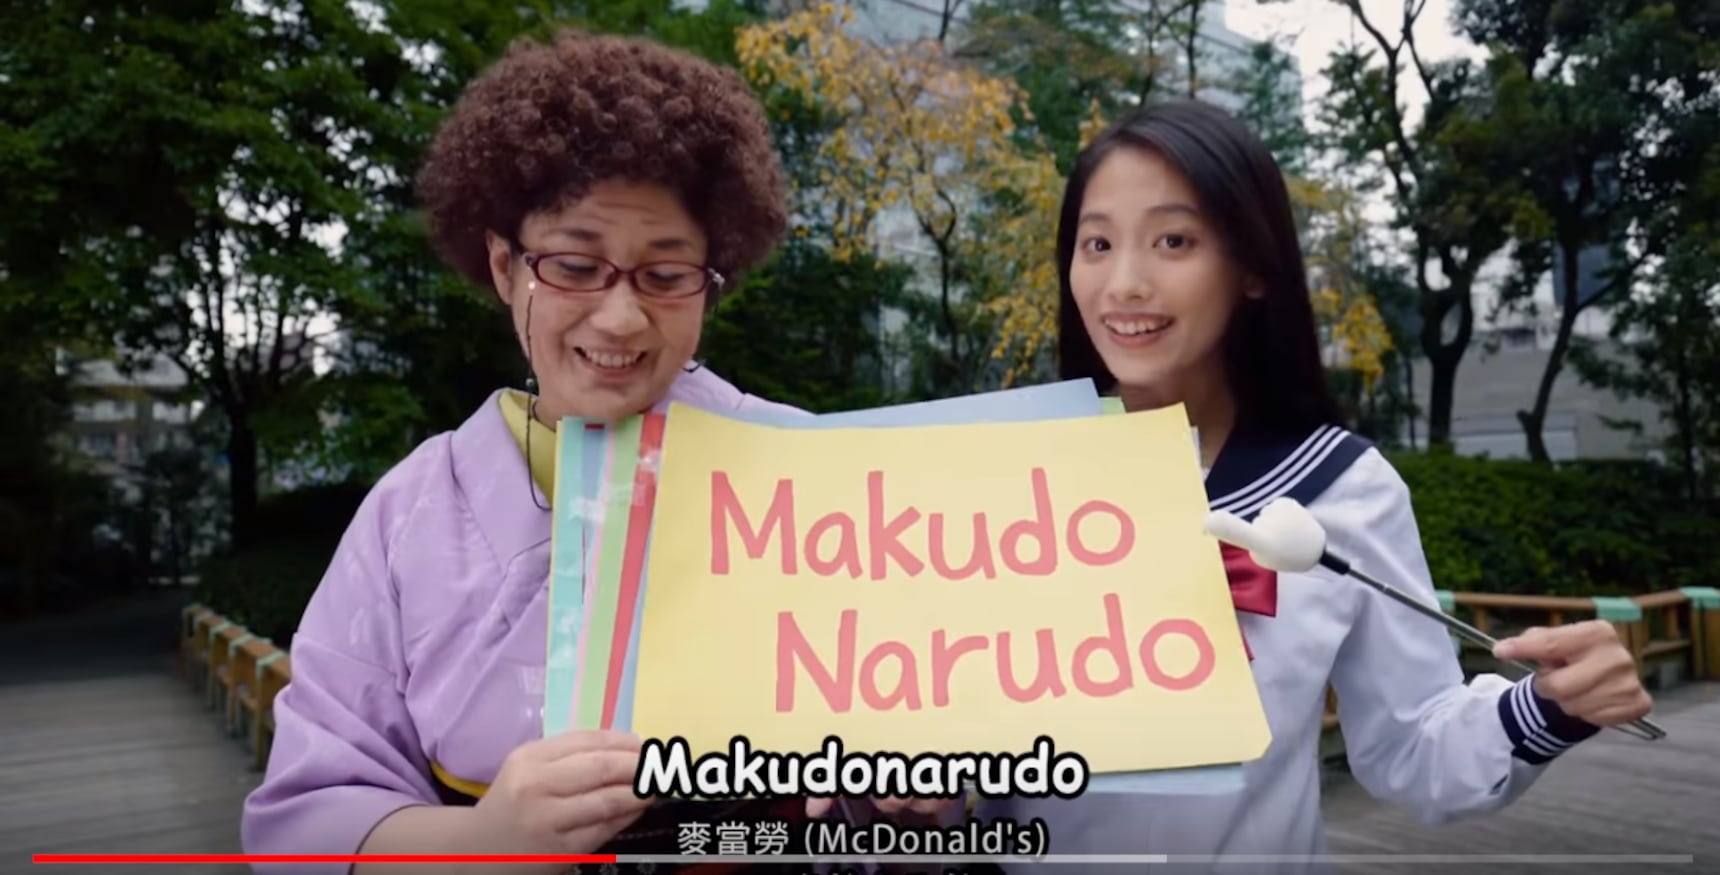 Learn Japanese Through the Craziest Video Ever